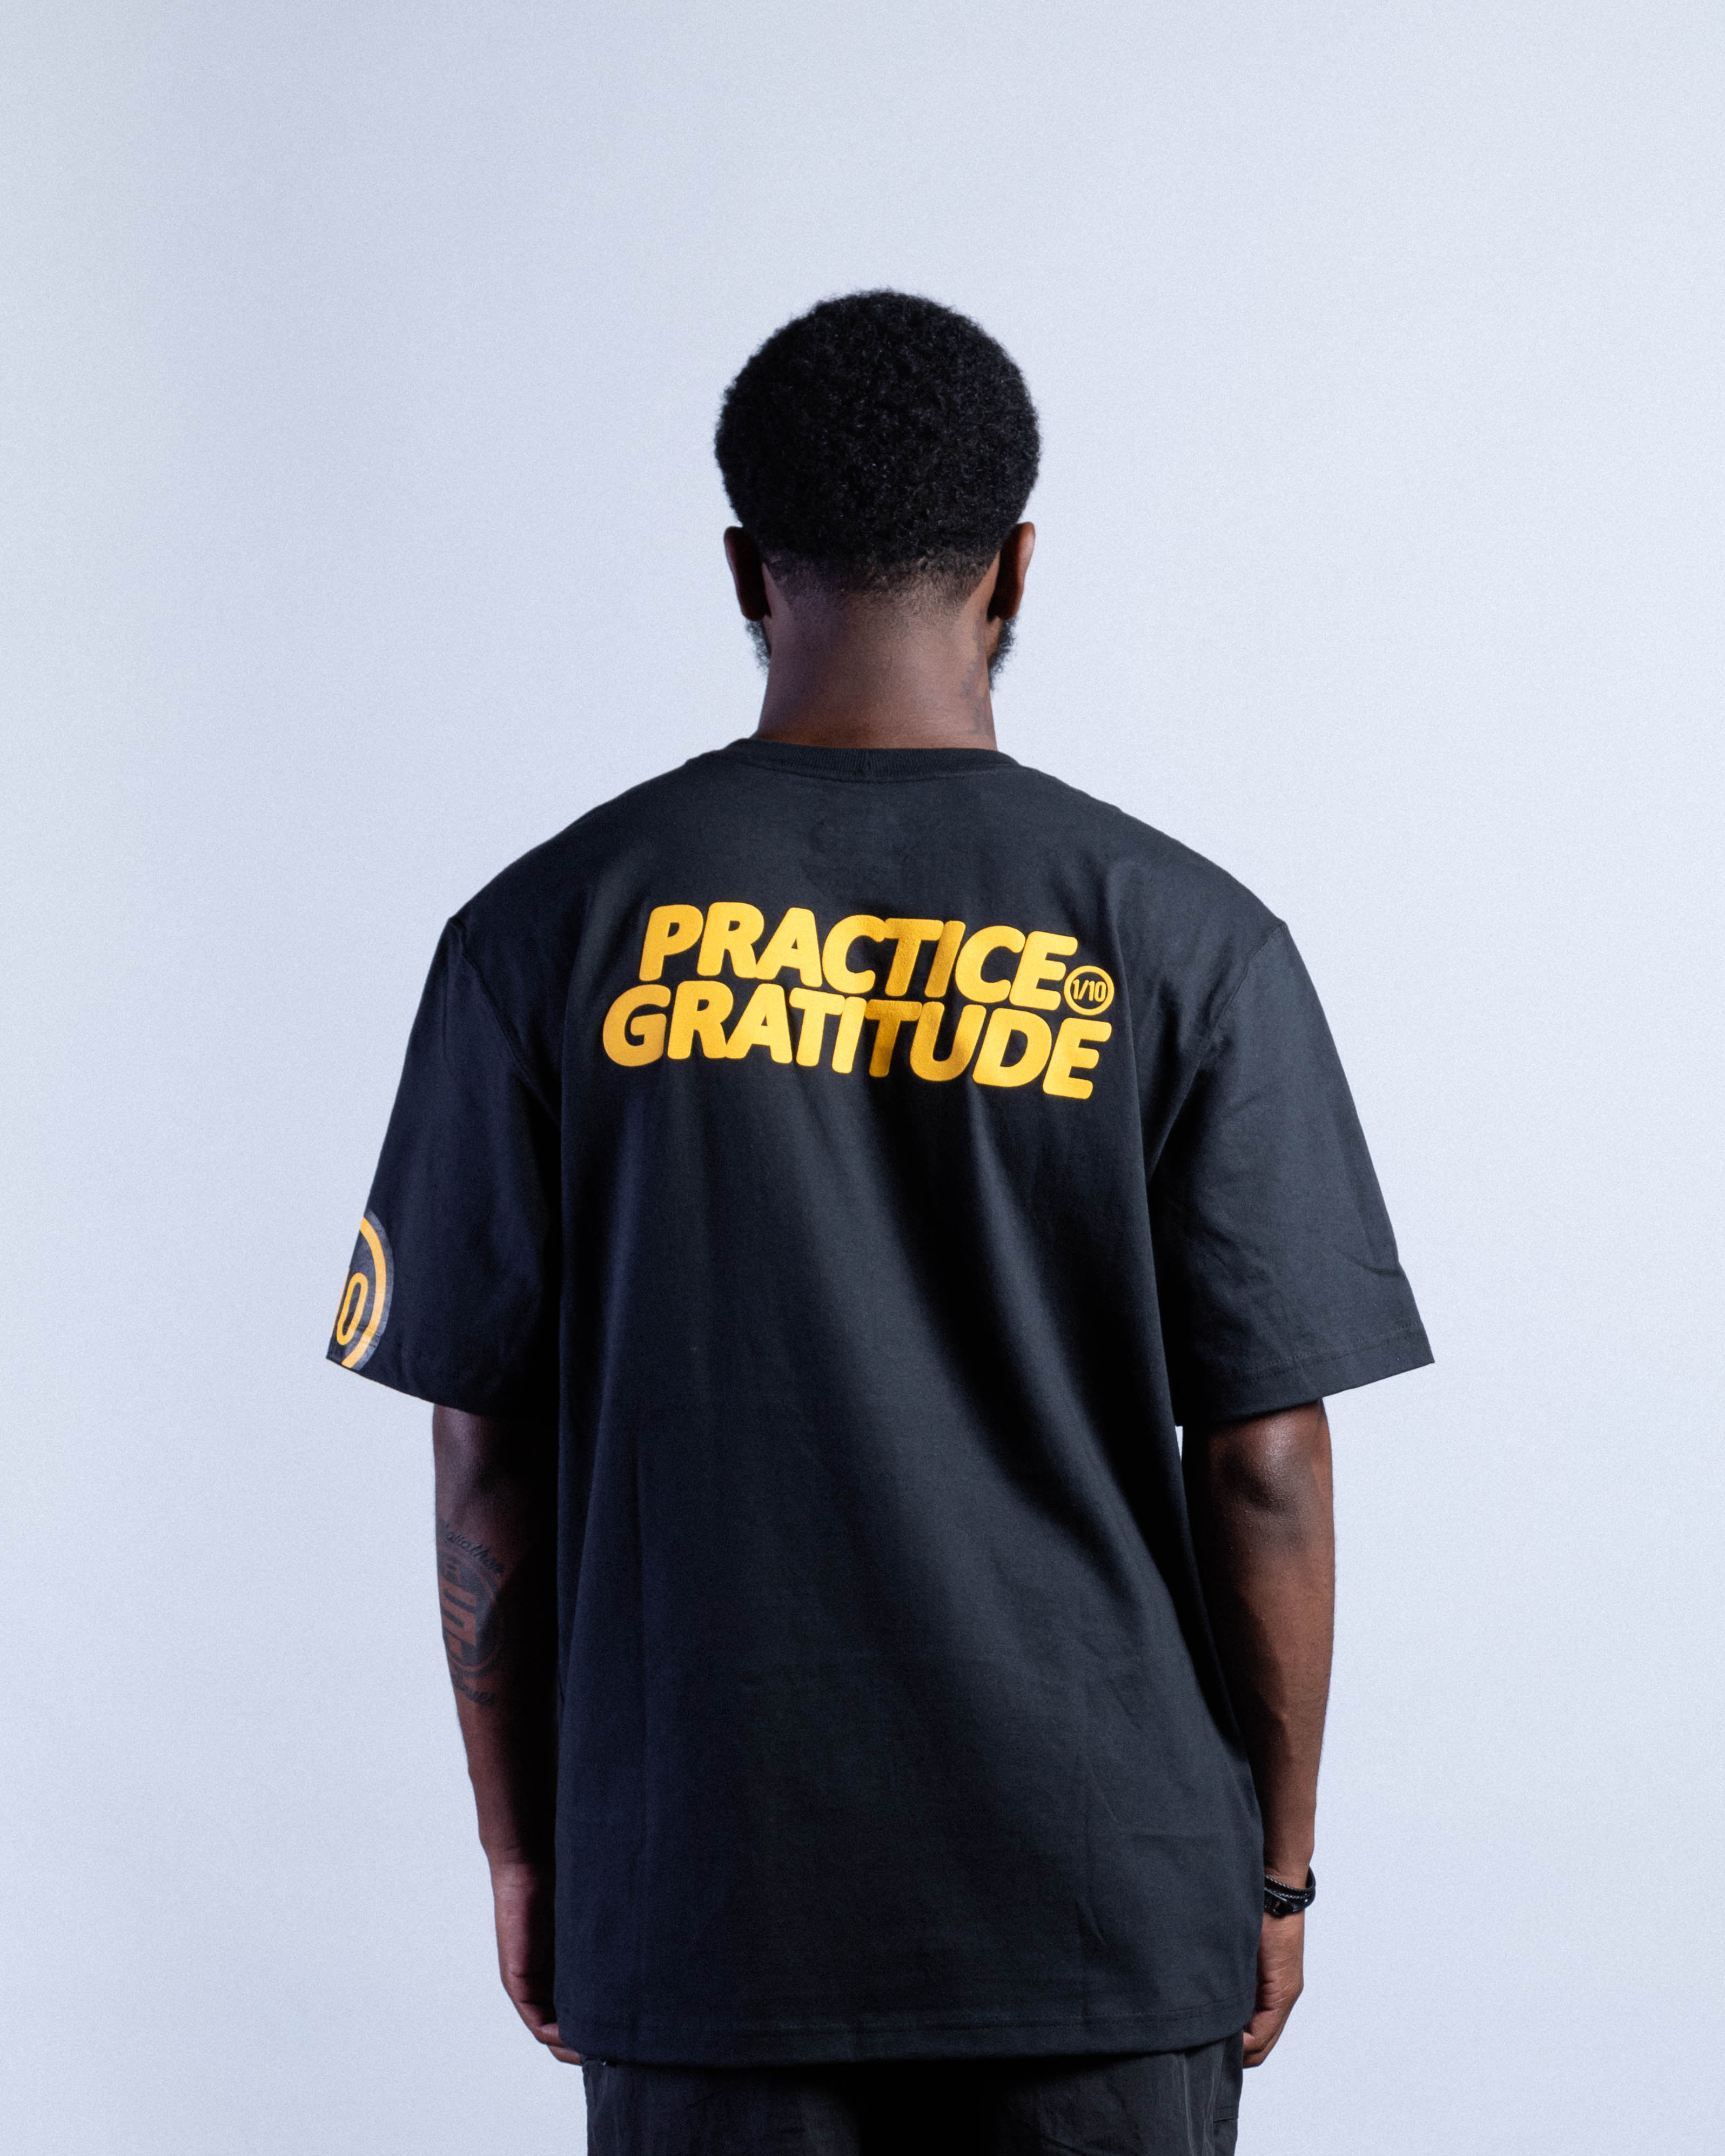 Practice Gratitude Tee (THESE SHIRTS FIT BIG, A MORE ROOMY FIT)